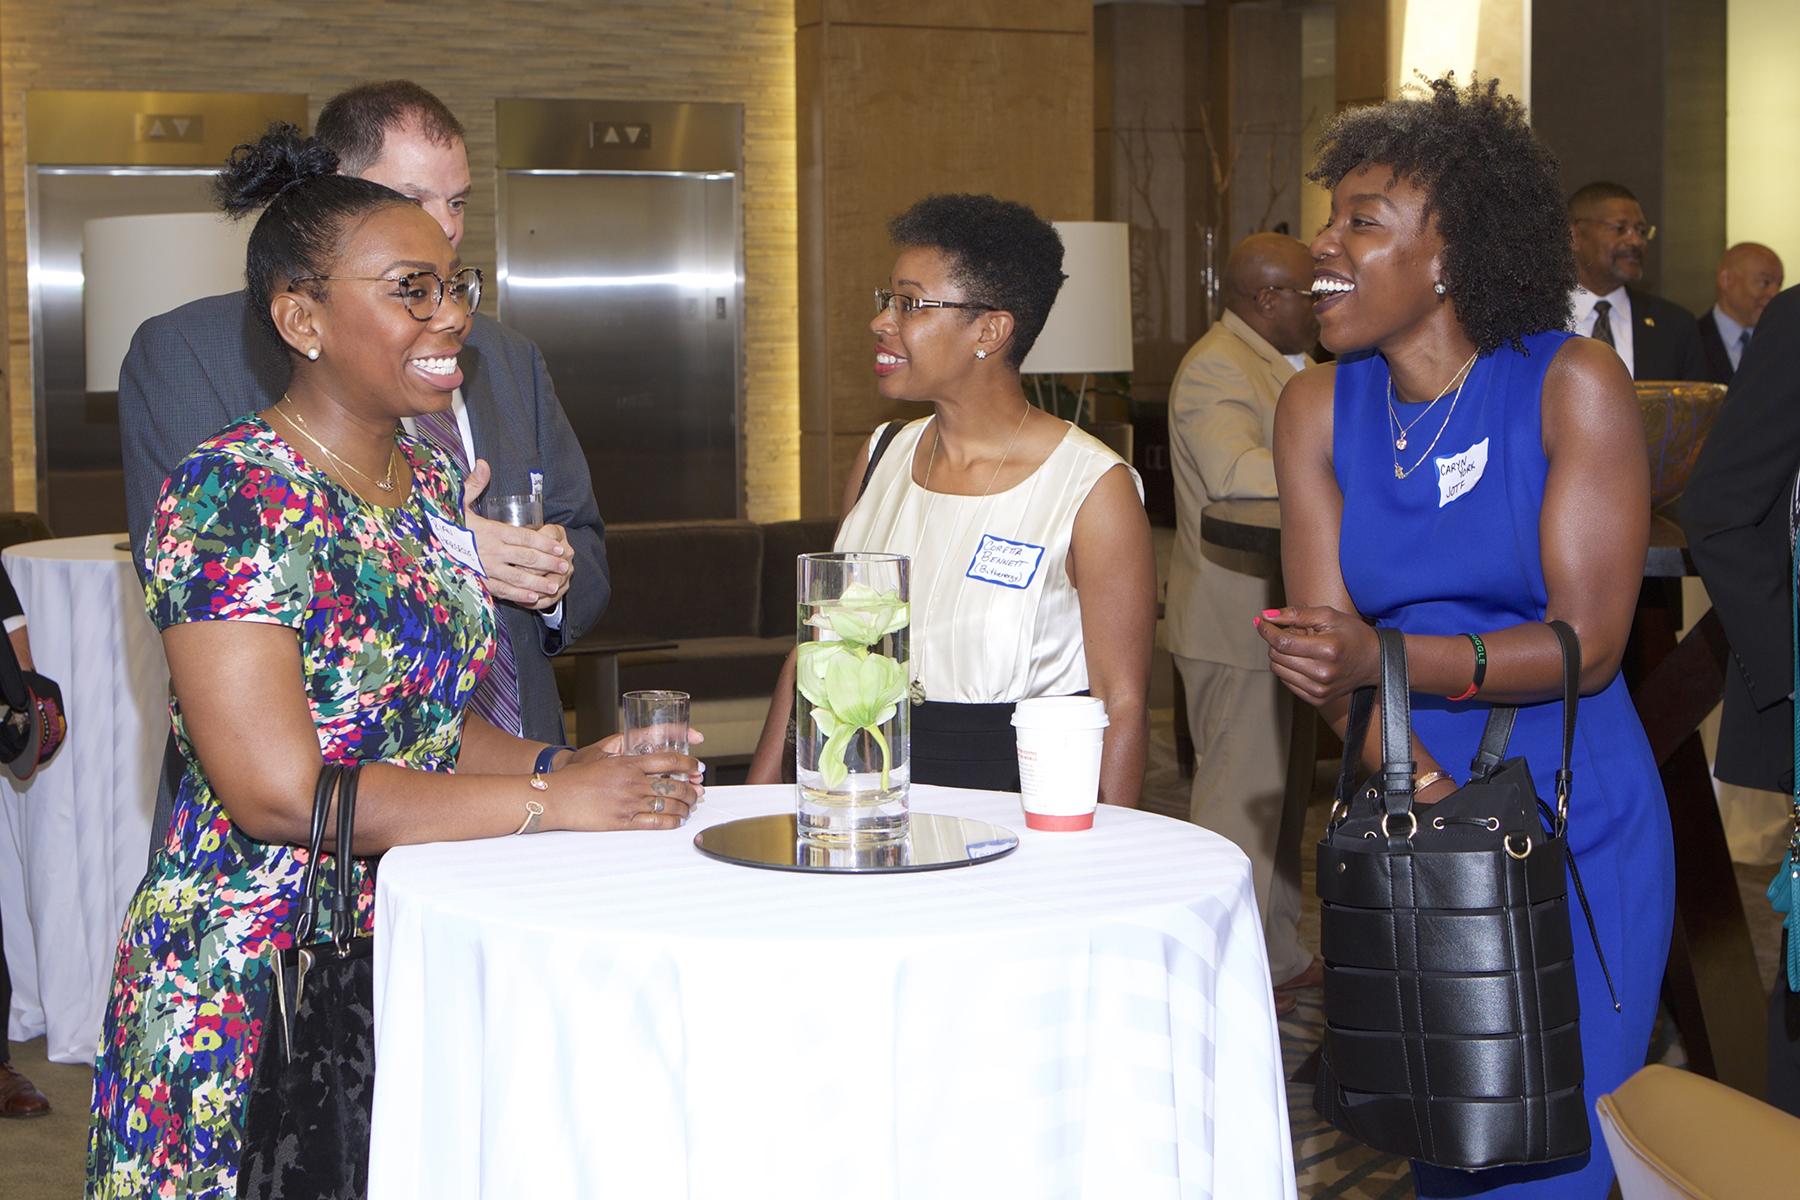 Rian Hargrave (Mahogany, Inc.), Coretta Bennett (BITHGroup) and Caryn York (JOTF)